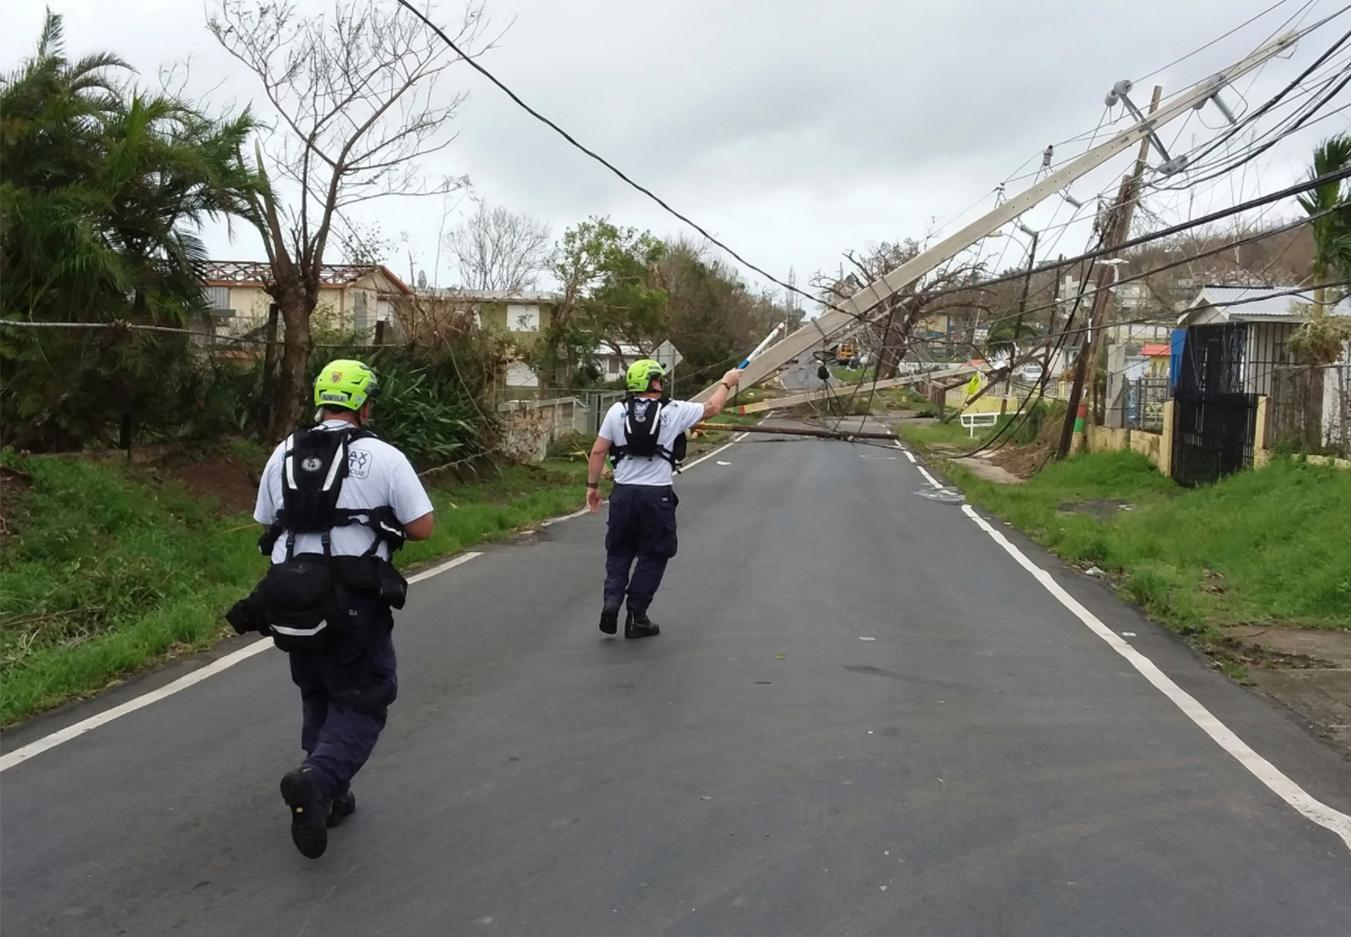 In this Friday, Sept. 22, 2017 photo provided by the Virginia Task Force 1, crew members ultilize a hot stick to assess electrical lines in the aftermath of Hurricane Maria, in eastern Puerto Rico. Days after Maria ravaged Puerto Rico, flooding towns, crushing homes, millions on the island face the dispiriting prospect of weeks and perhaps months without electricity. (Virginia Task Force 1 via AP)